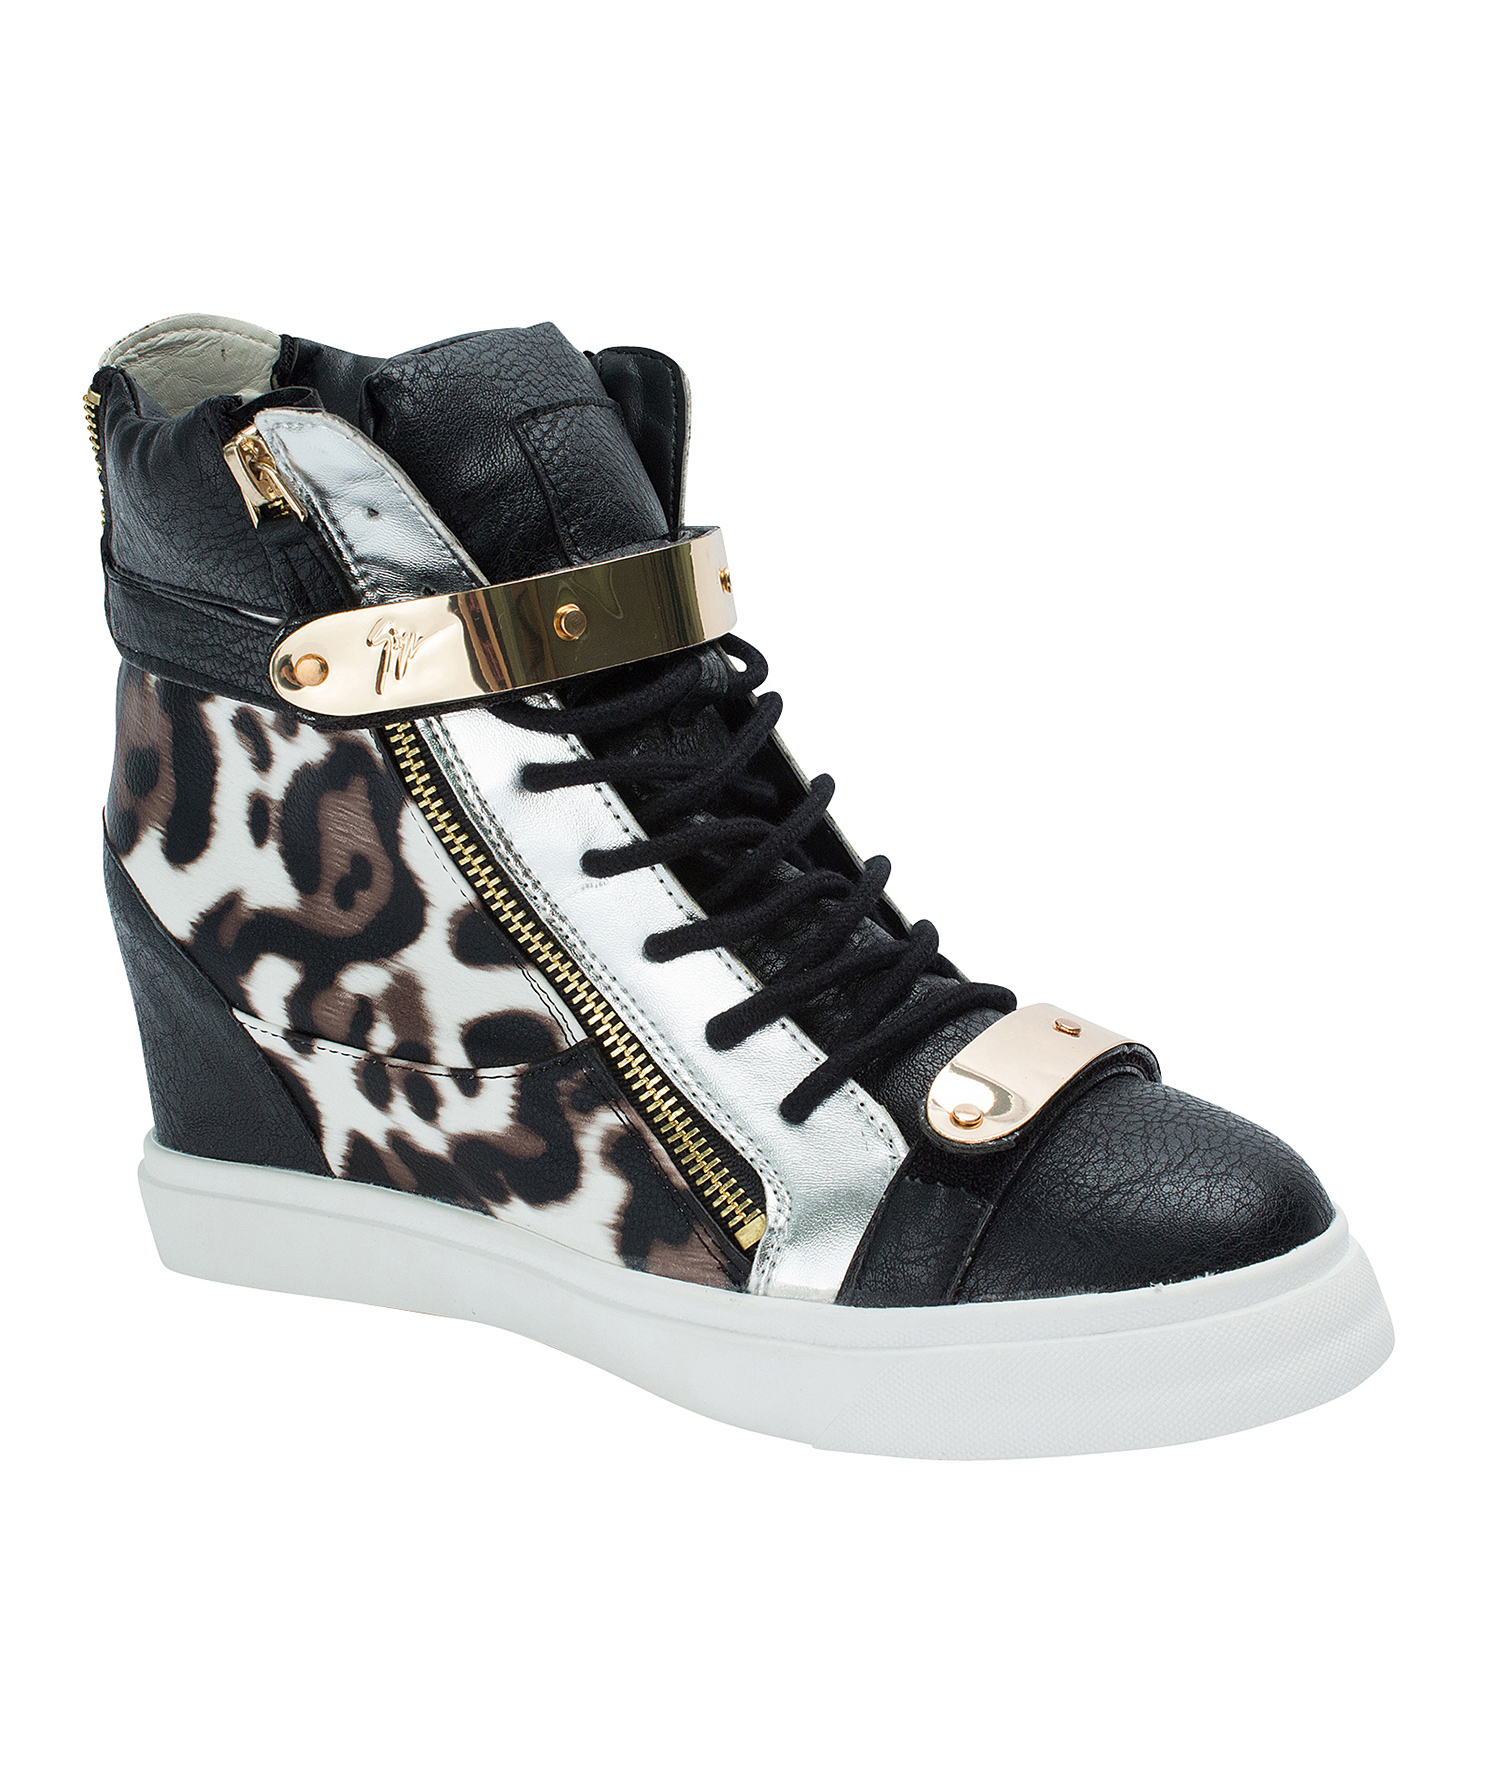 AnnaKastle Womens Leopard High-Top Metal Strap Sneakers